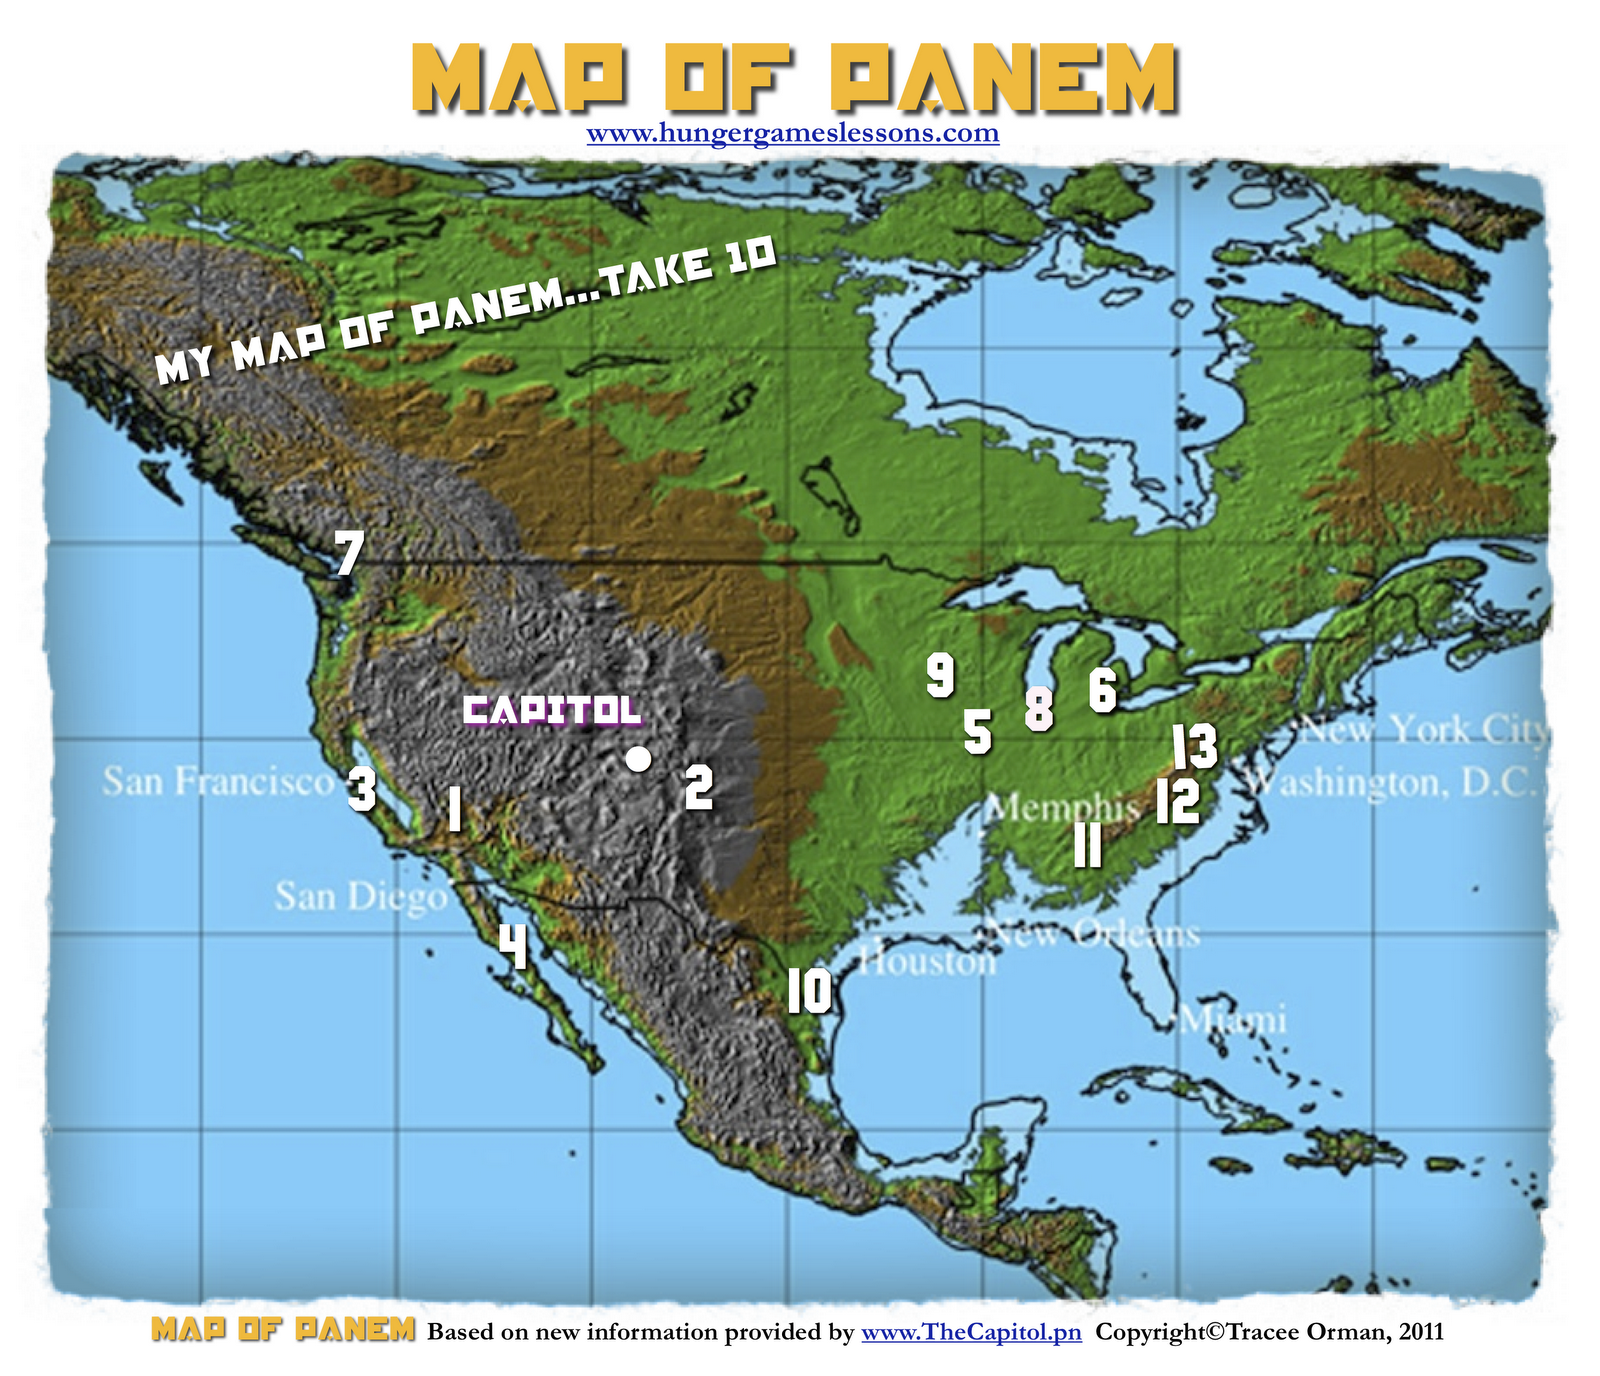 Hunger Games Lessons: My Updated Map of Panem, The Hunger ...